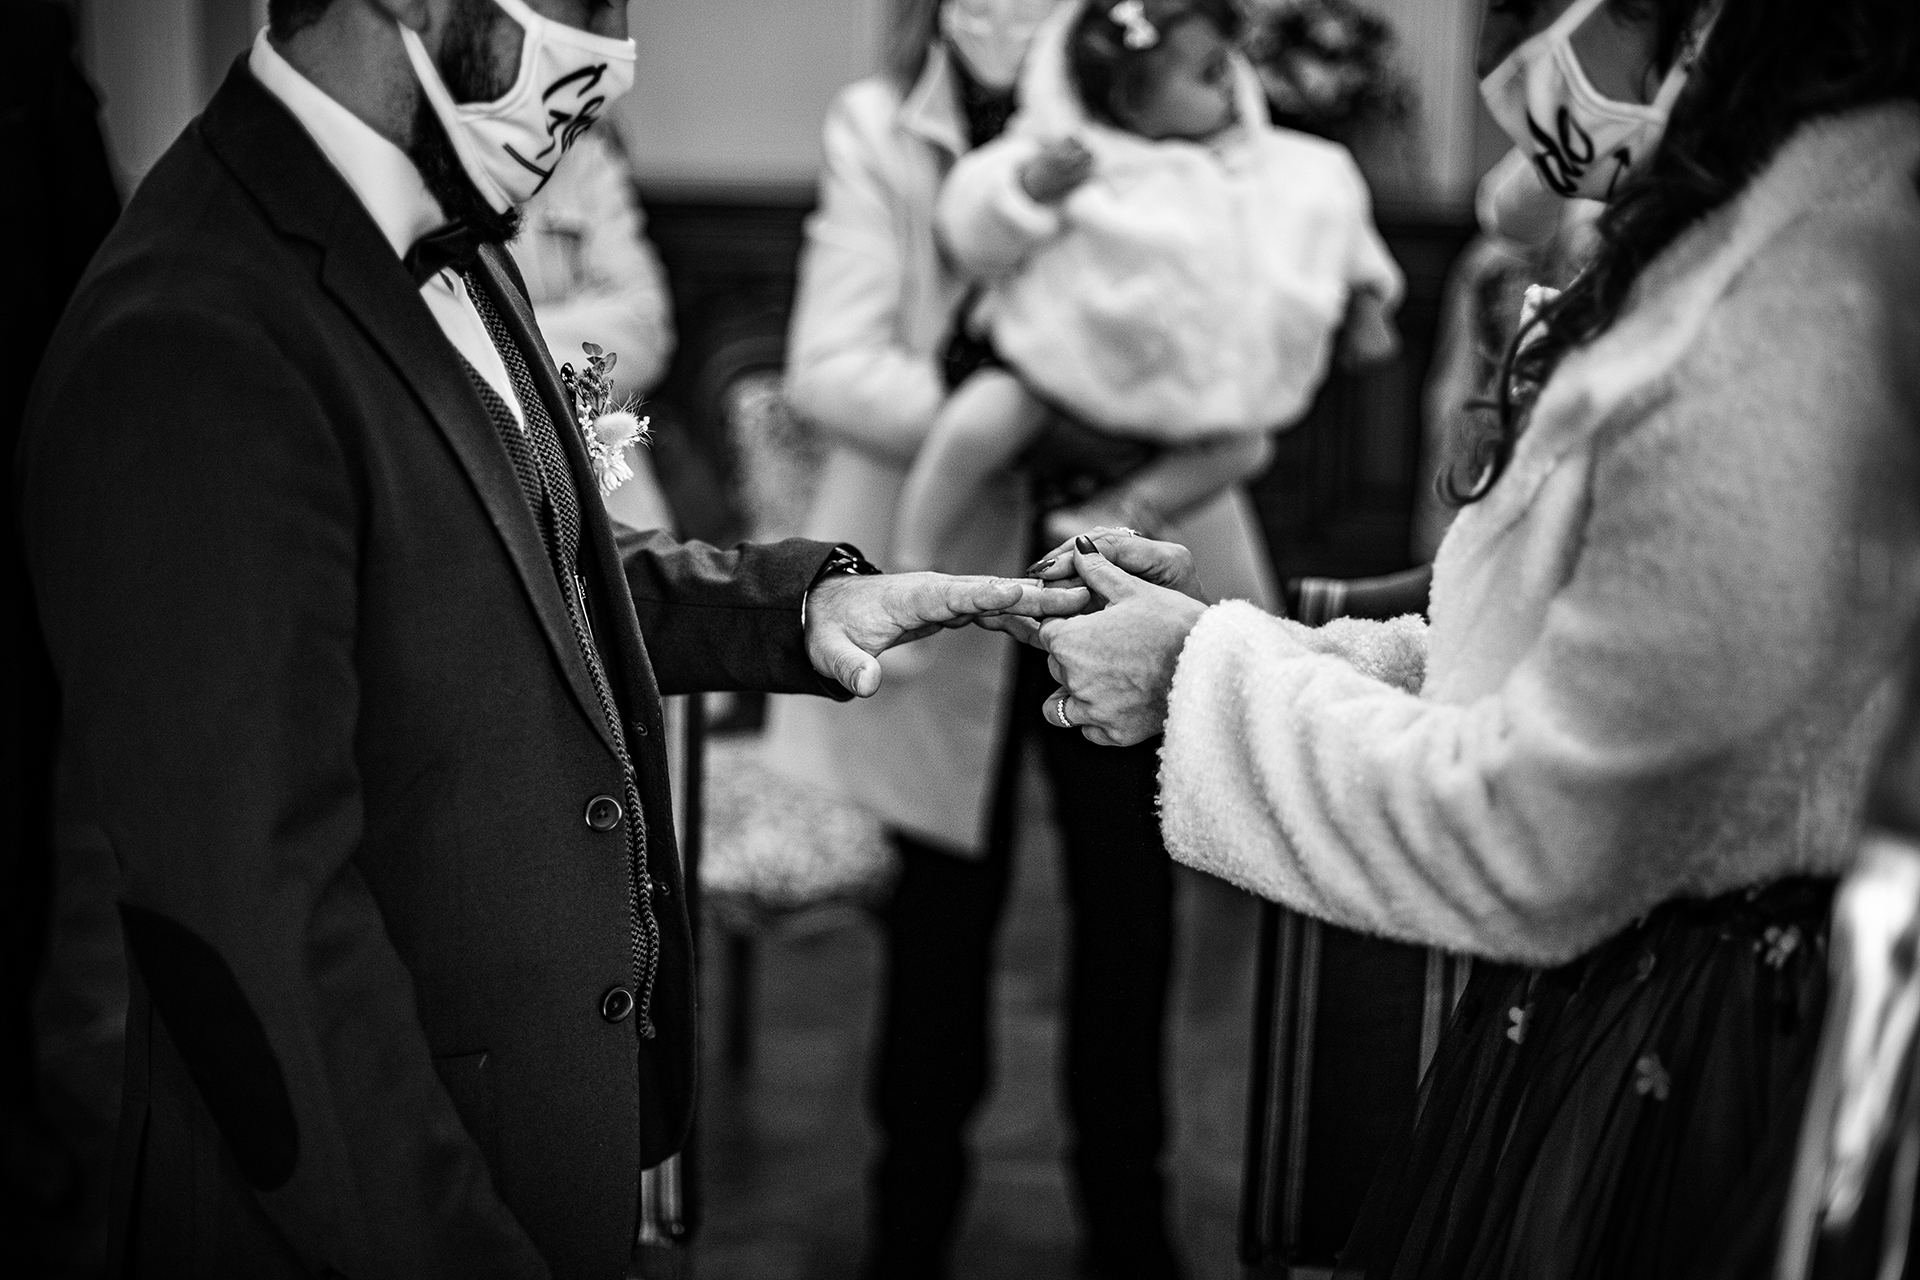 Mairie de Pont du Château Wedding Ceremony Picture | The bride gently places the groom's wedding ring on his finger